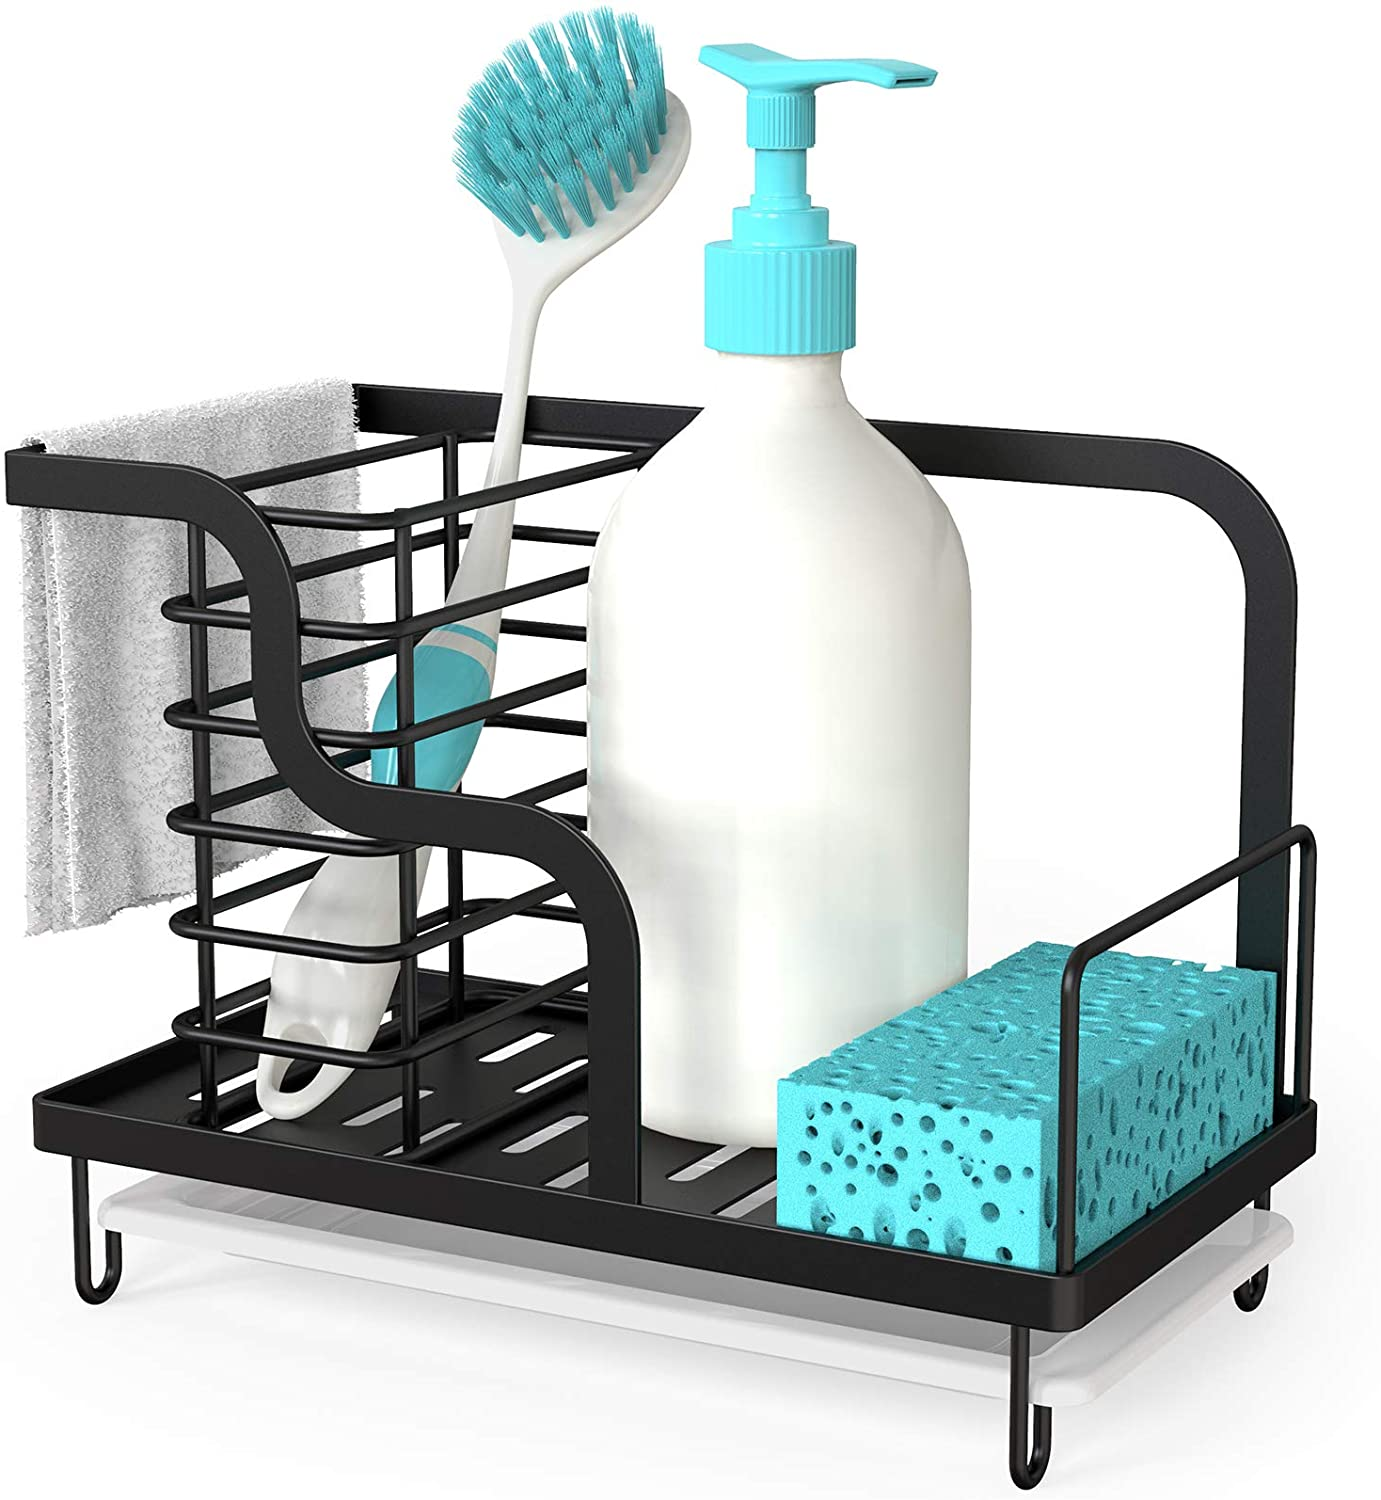 FavoThings Kitchen Sink Caddy Organizer with Drain Pan, Stainless Steel, for Sponges, Scrubbers, Soap, Kitchen, Bathroom